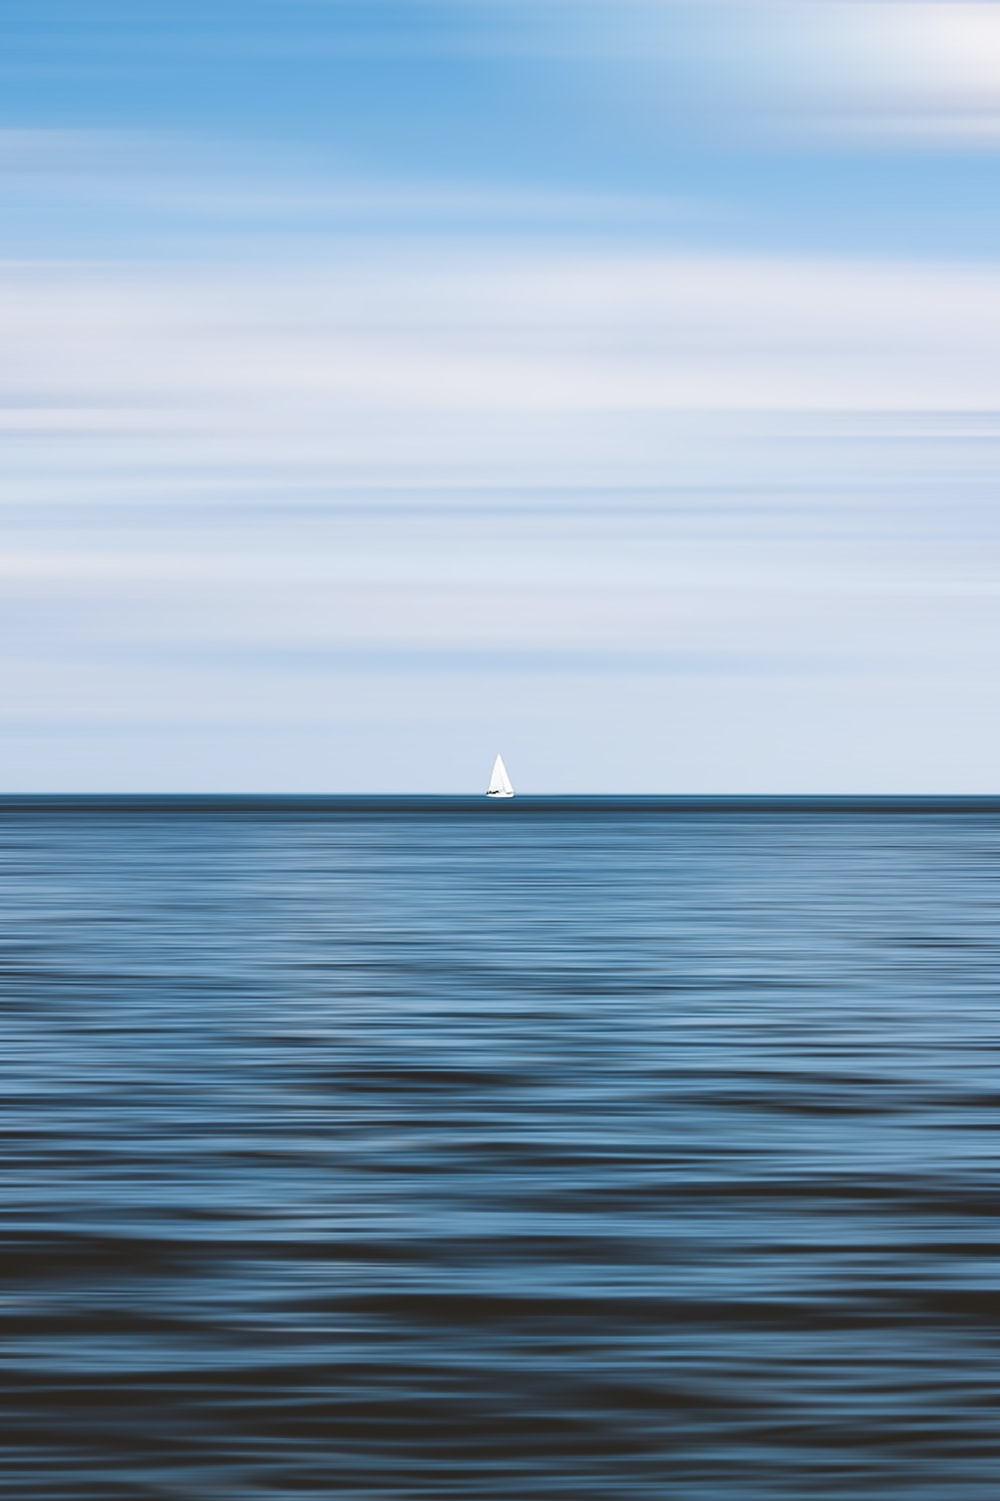 white sailboat on sea during daytime